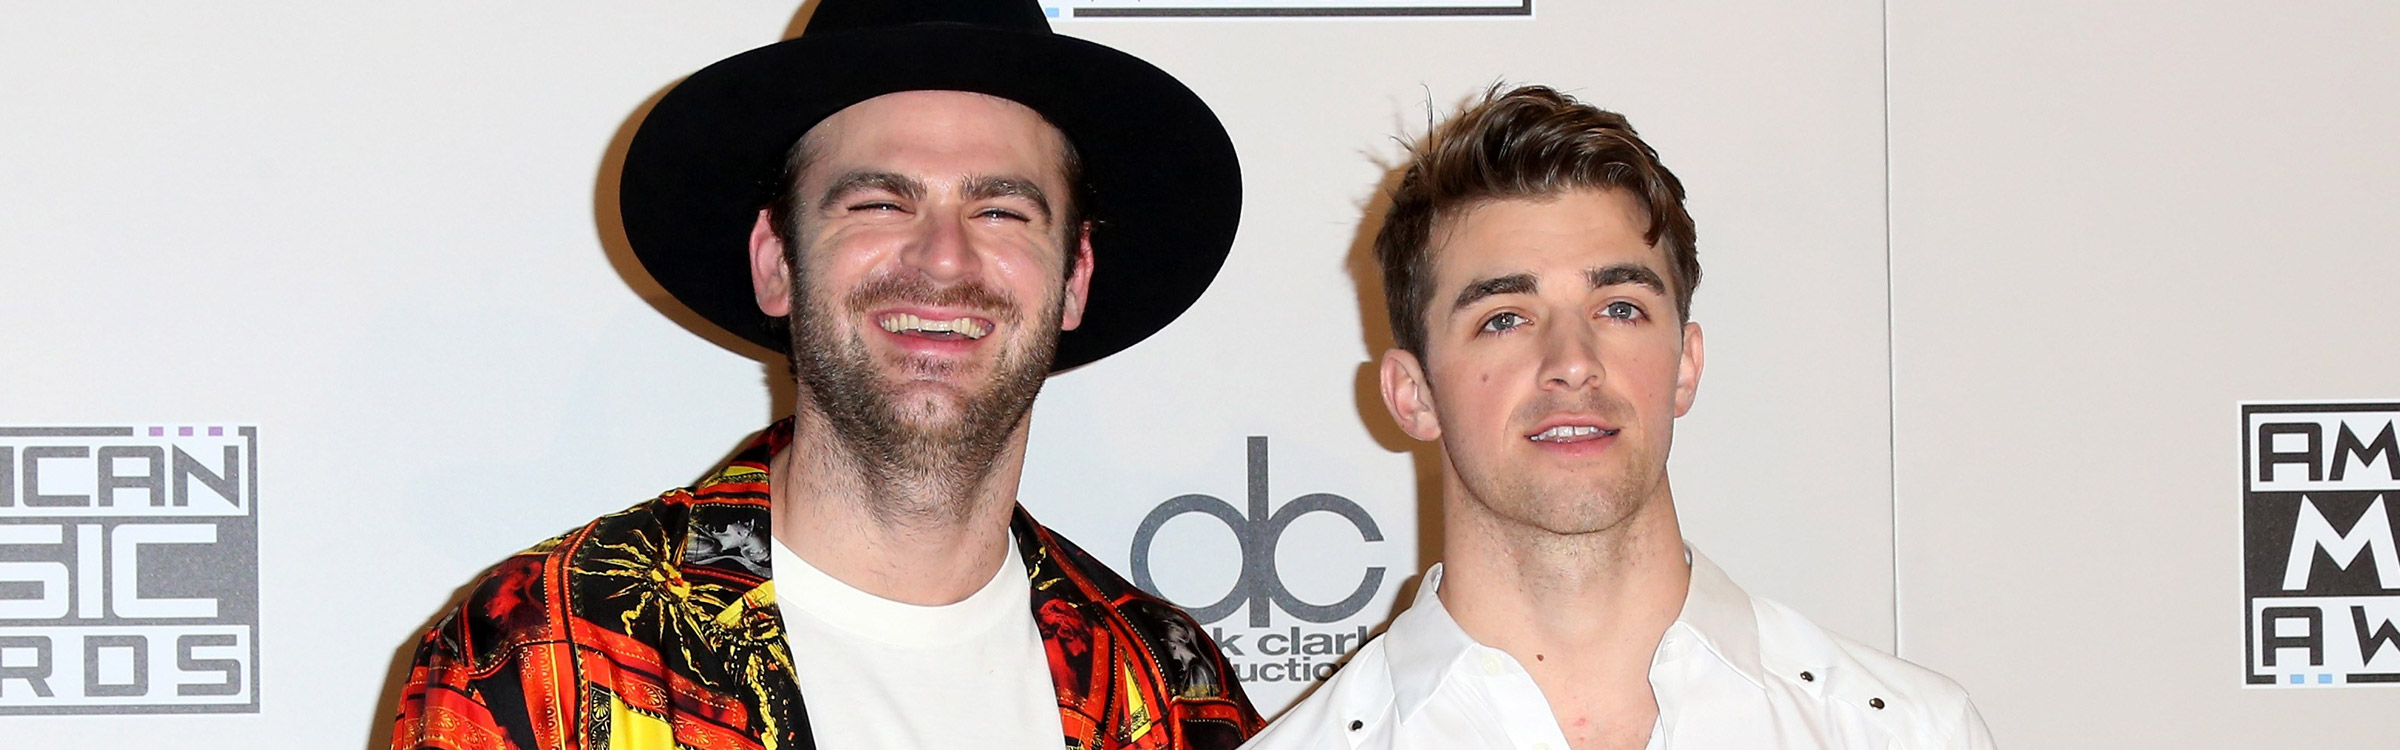 Header chainsmokers oke